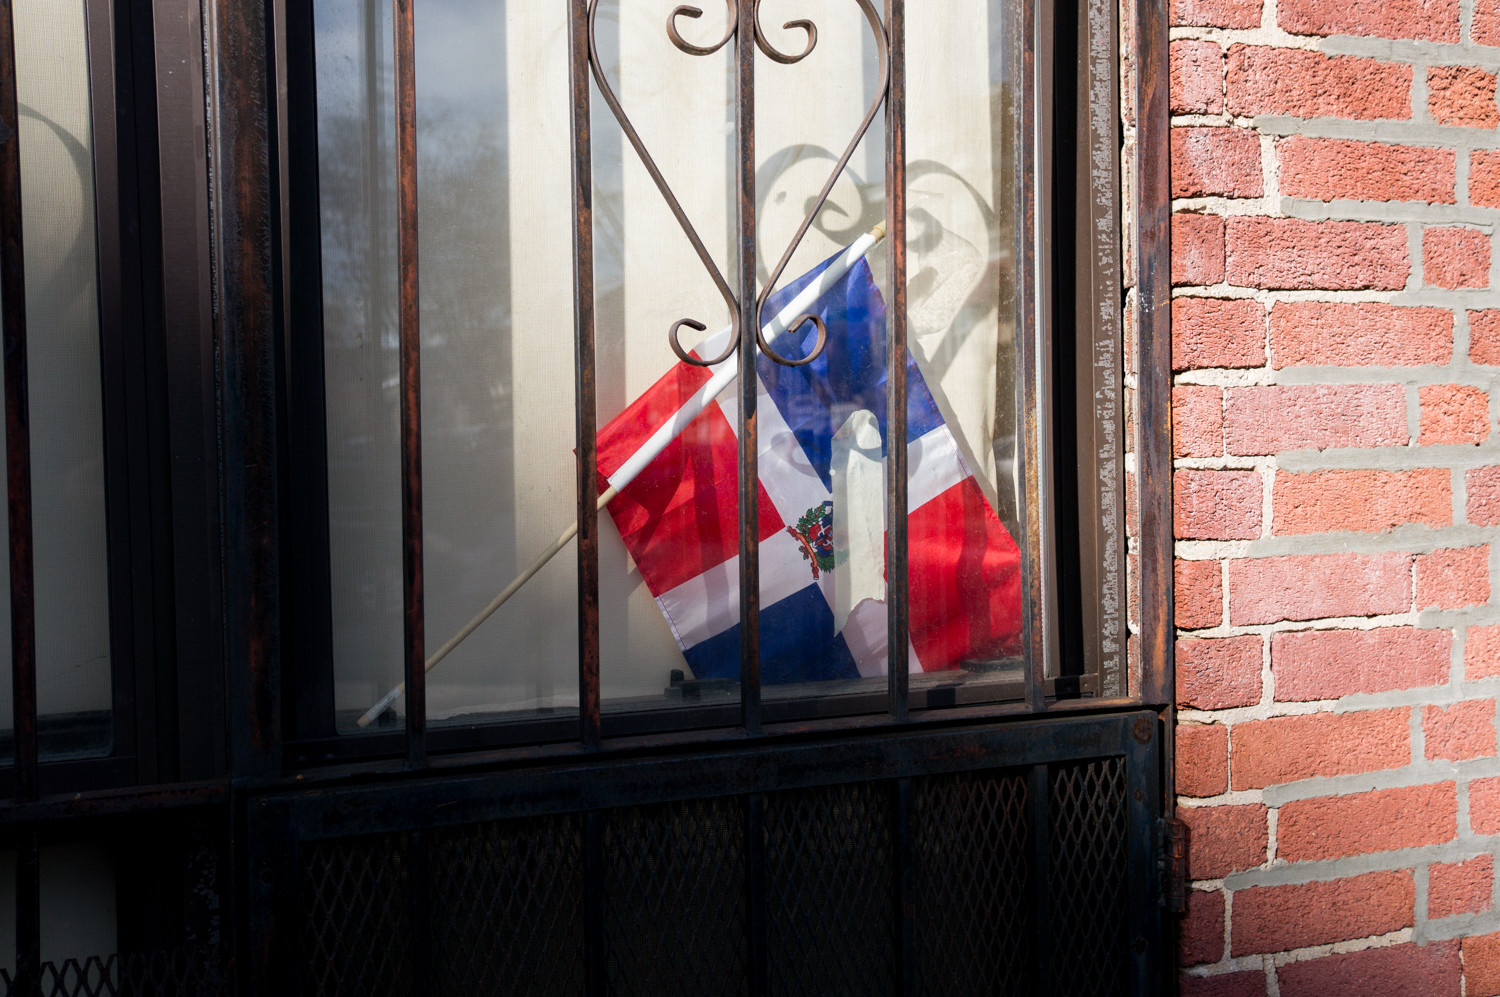 The national flag of the Dominican Republic rests in the window of an apartment in Kingsbridge Heights.